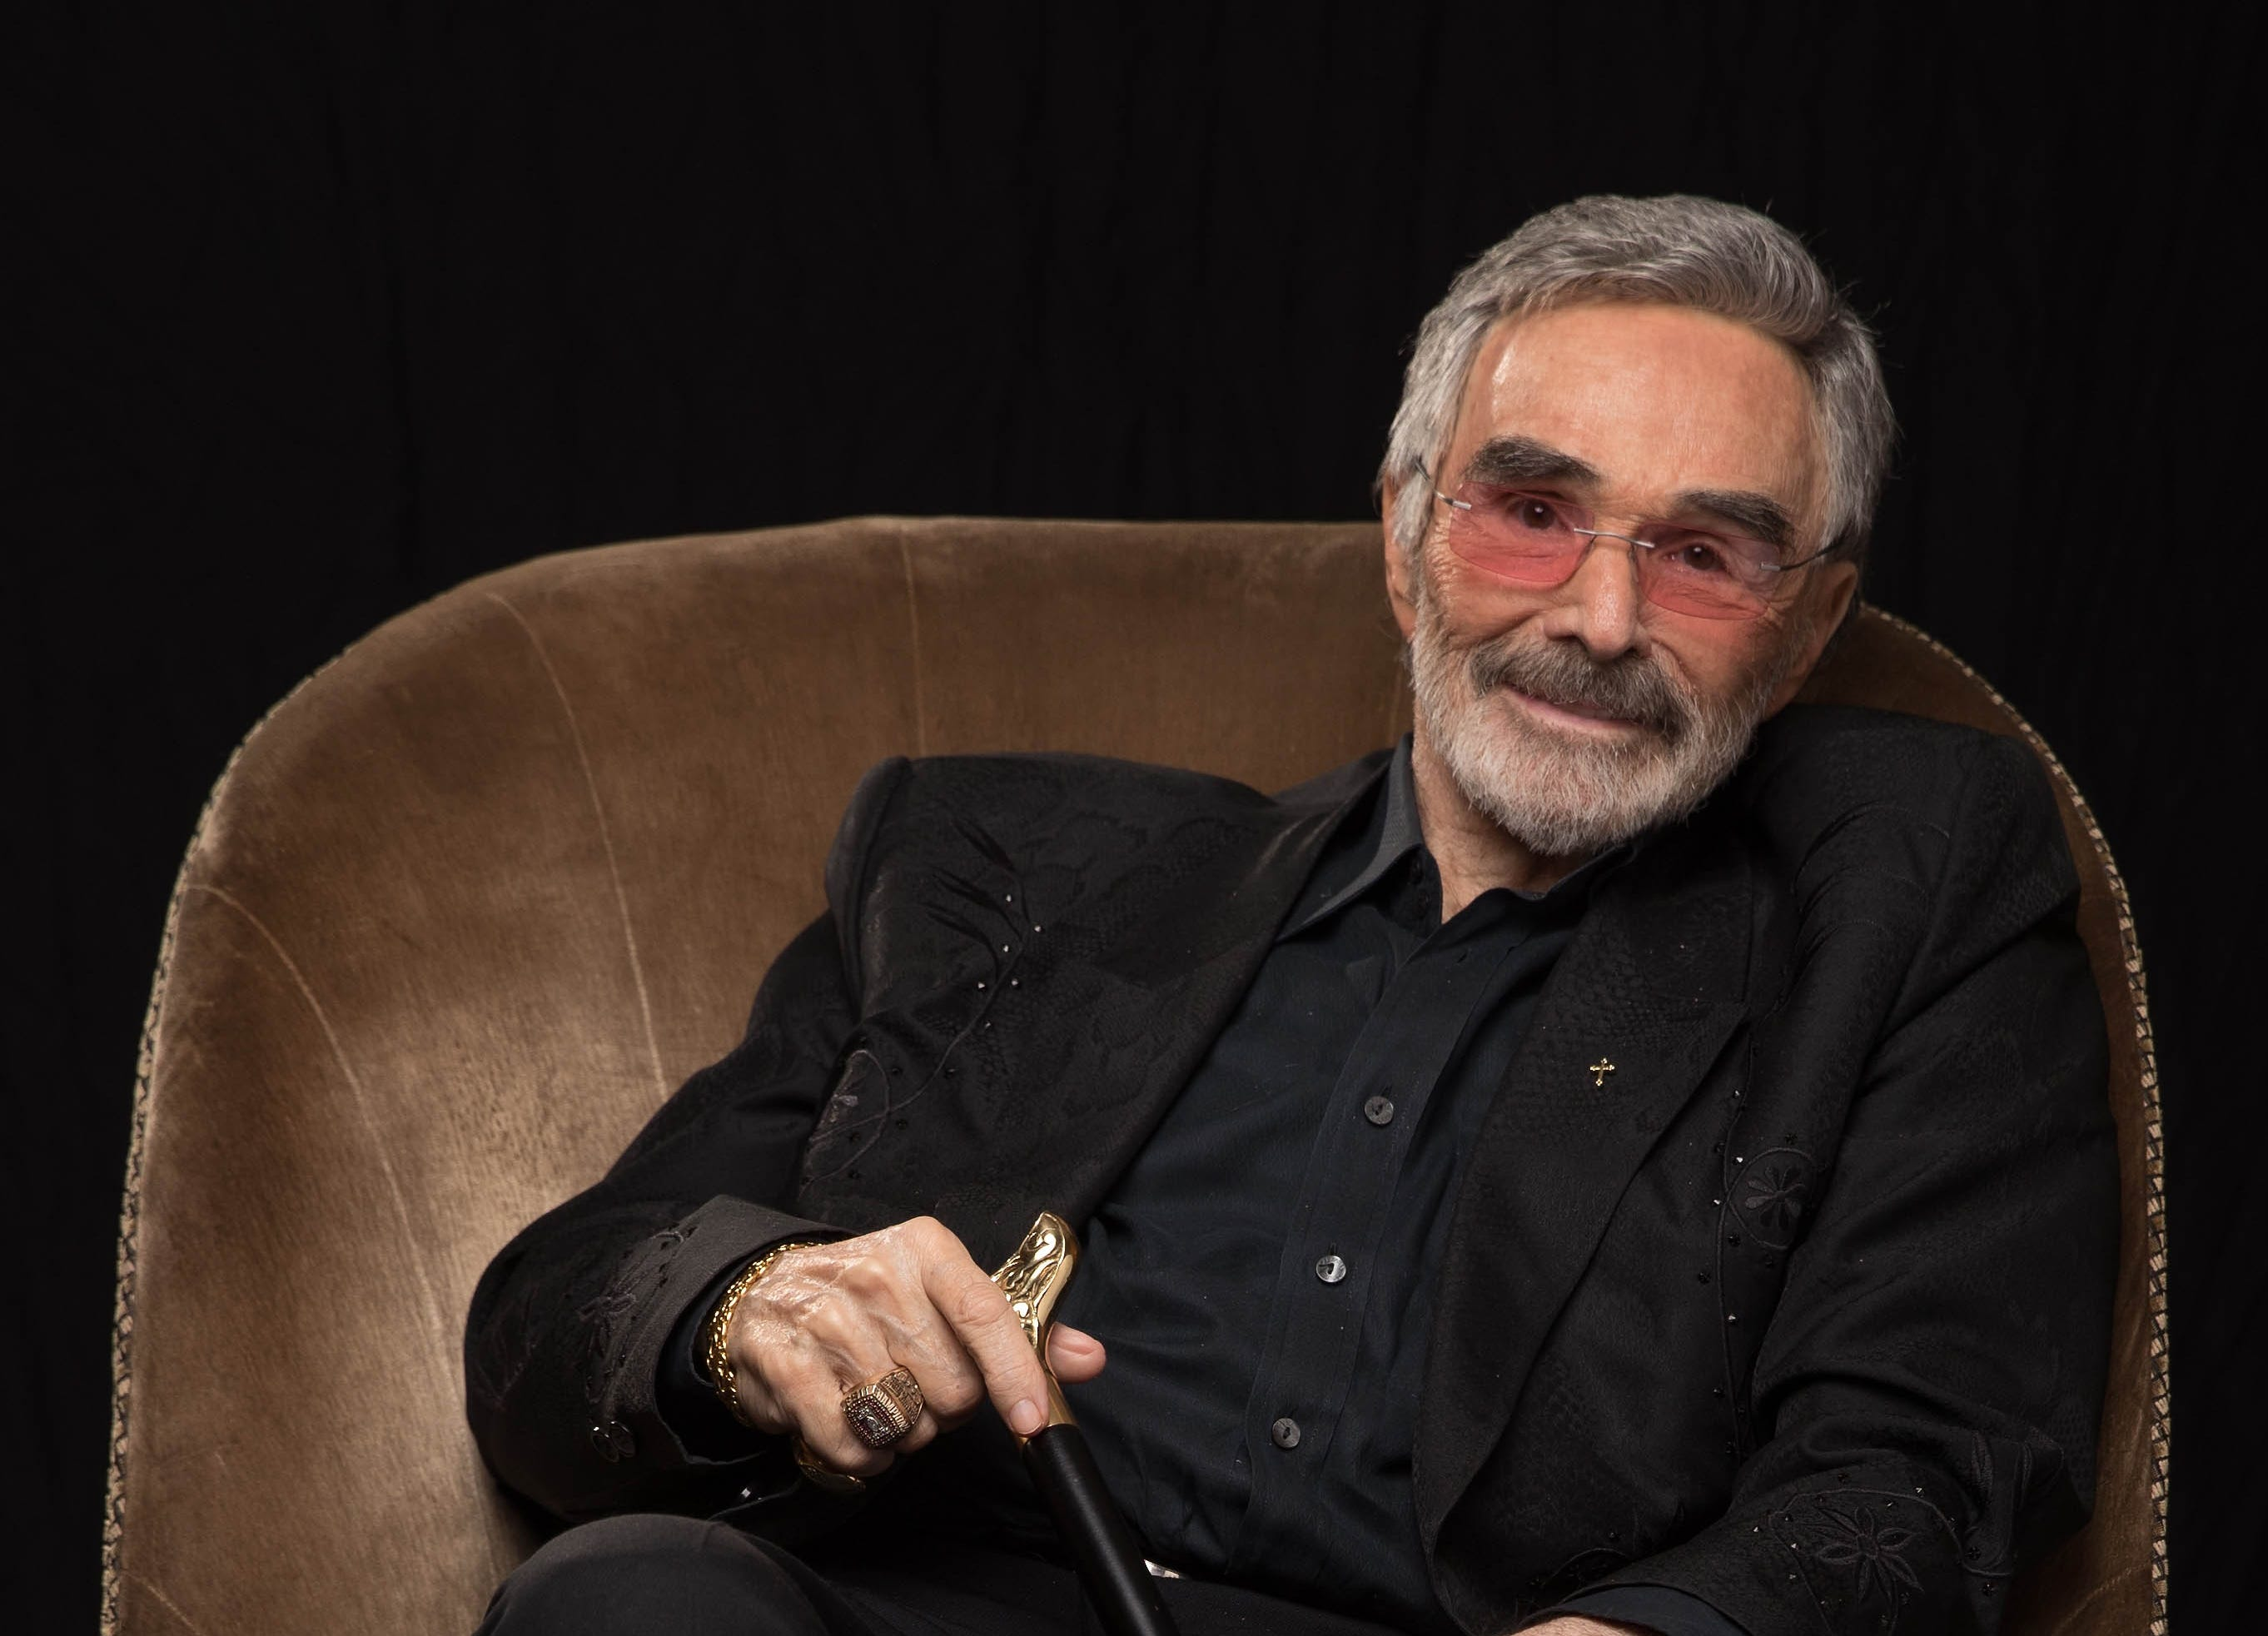 Family, friends bid Burt Reynolds farewell at private Florida funeral, reports say